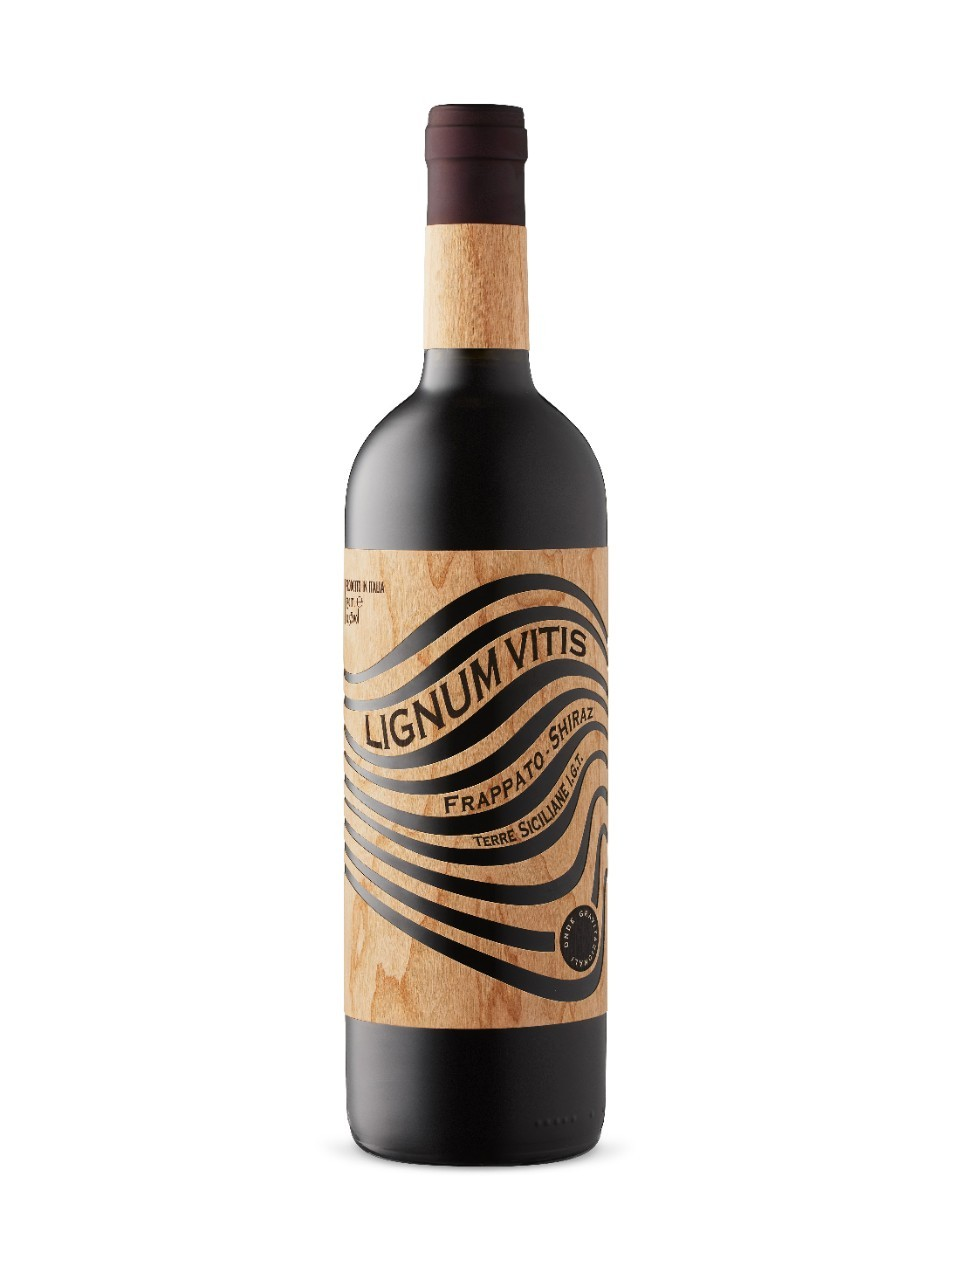 Image for Lignum Vitis Frappato Shiraz IGT Sicily from LCBO